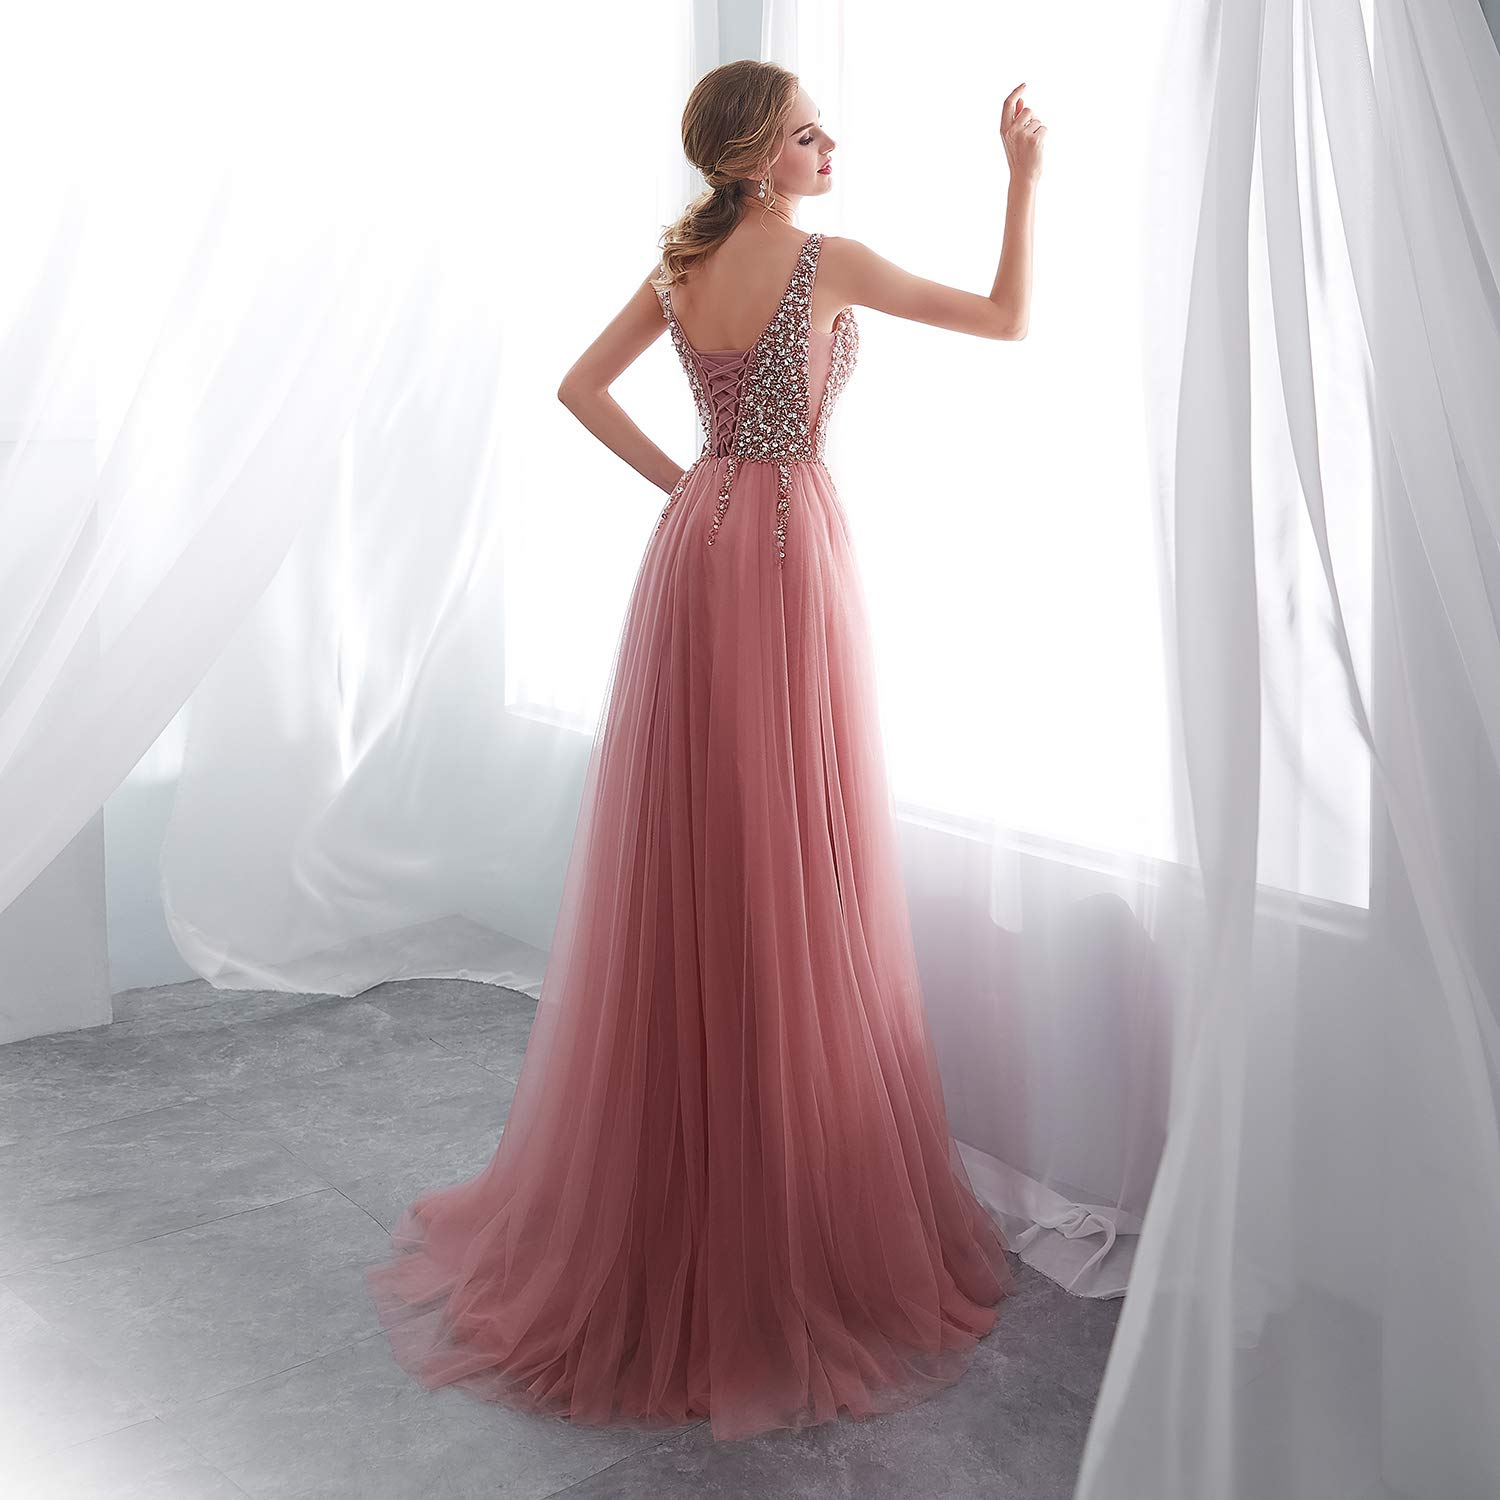 c0eb83c9 iLovewedding Prom Dresses High Slit V Neck Sequins Tulle Long Evening Gowns  at Amazon Women's Clothing store: